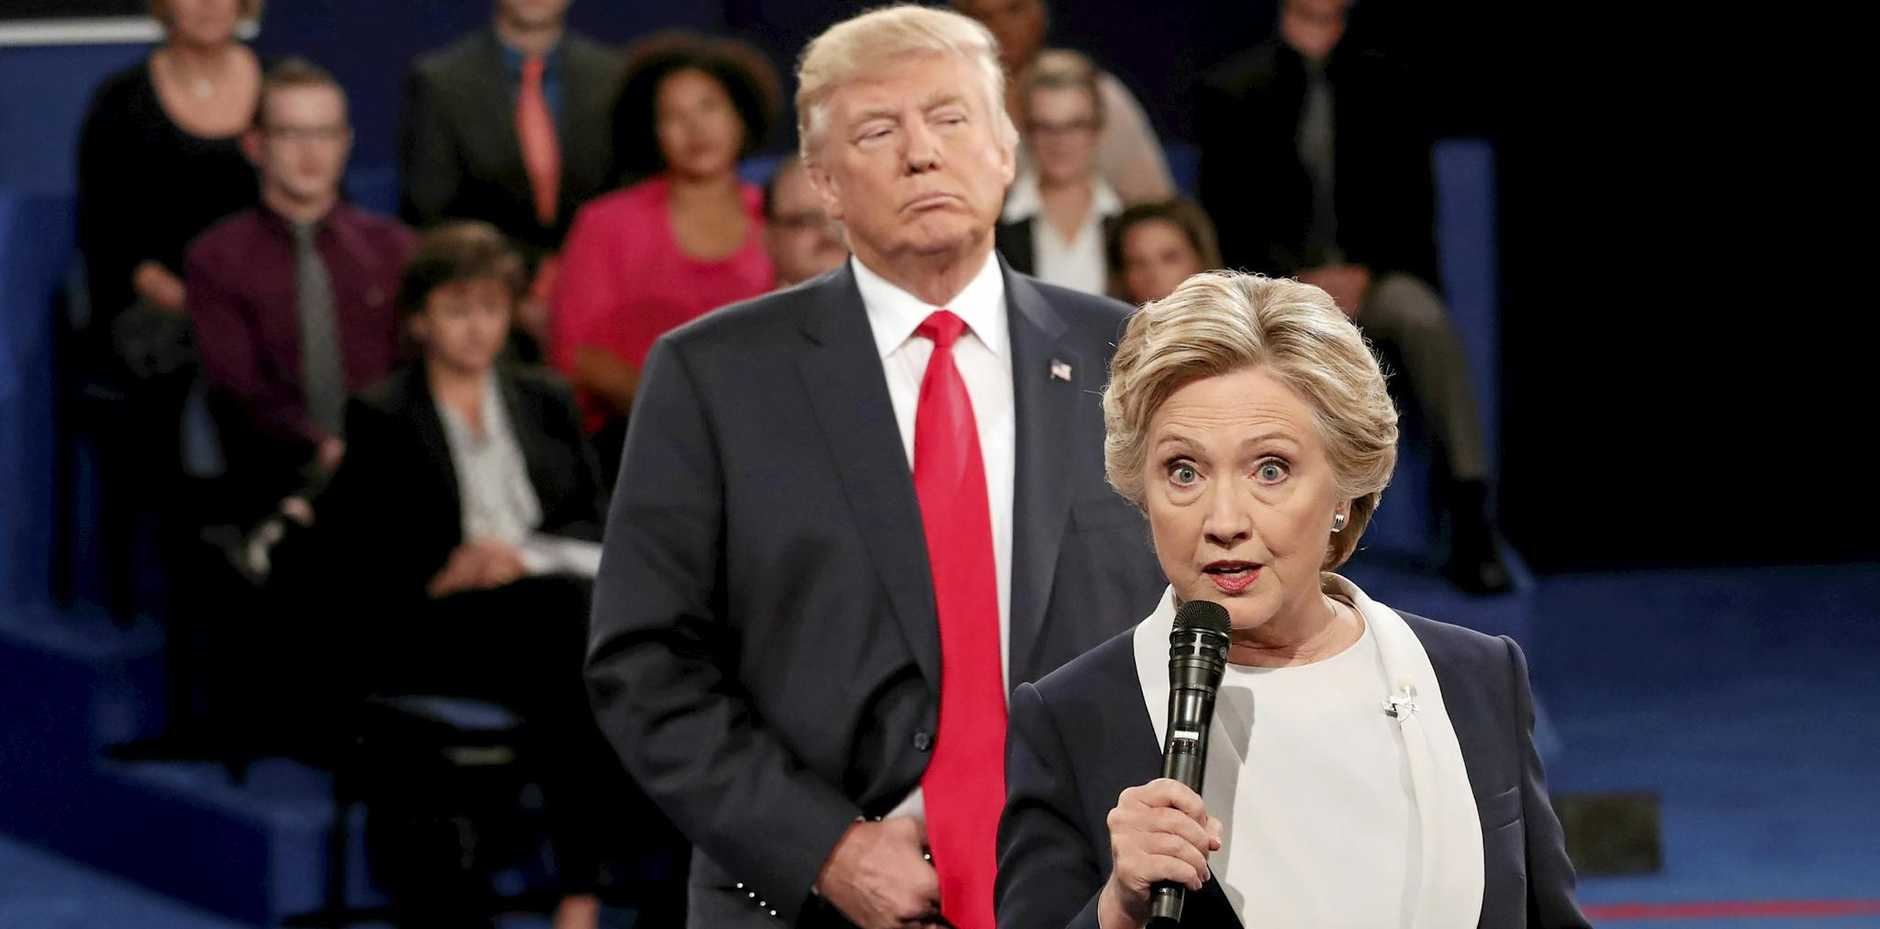 Defeated Democratic presidential nominee Hillary Clinton has accused Donald Trump of invading her space during their second debate.